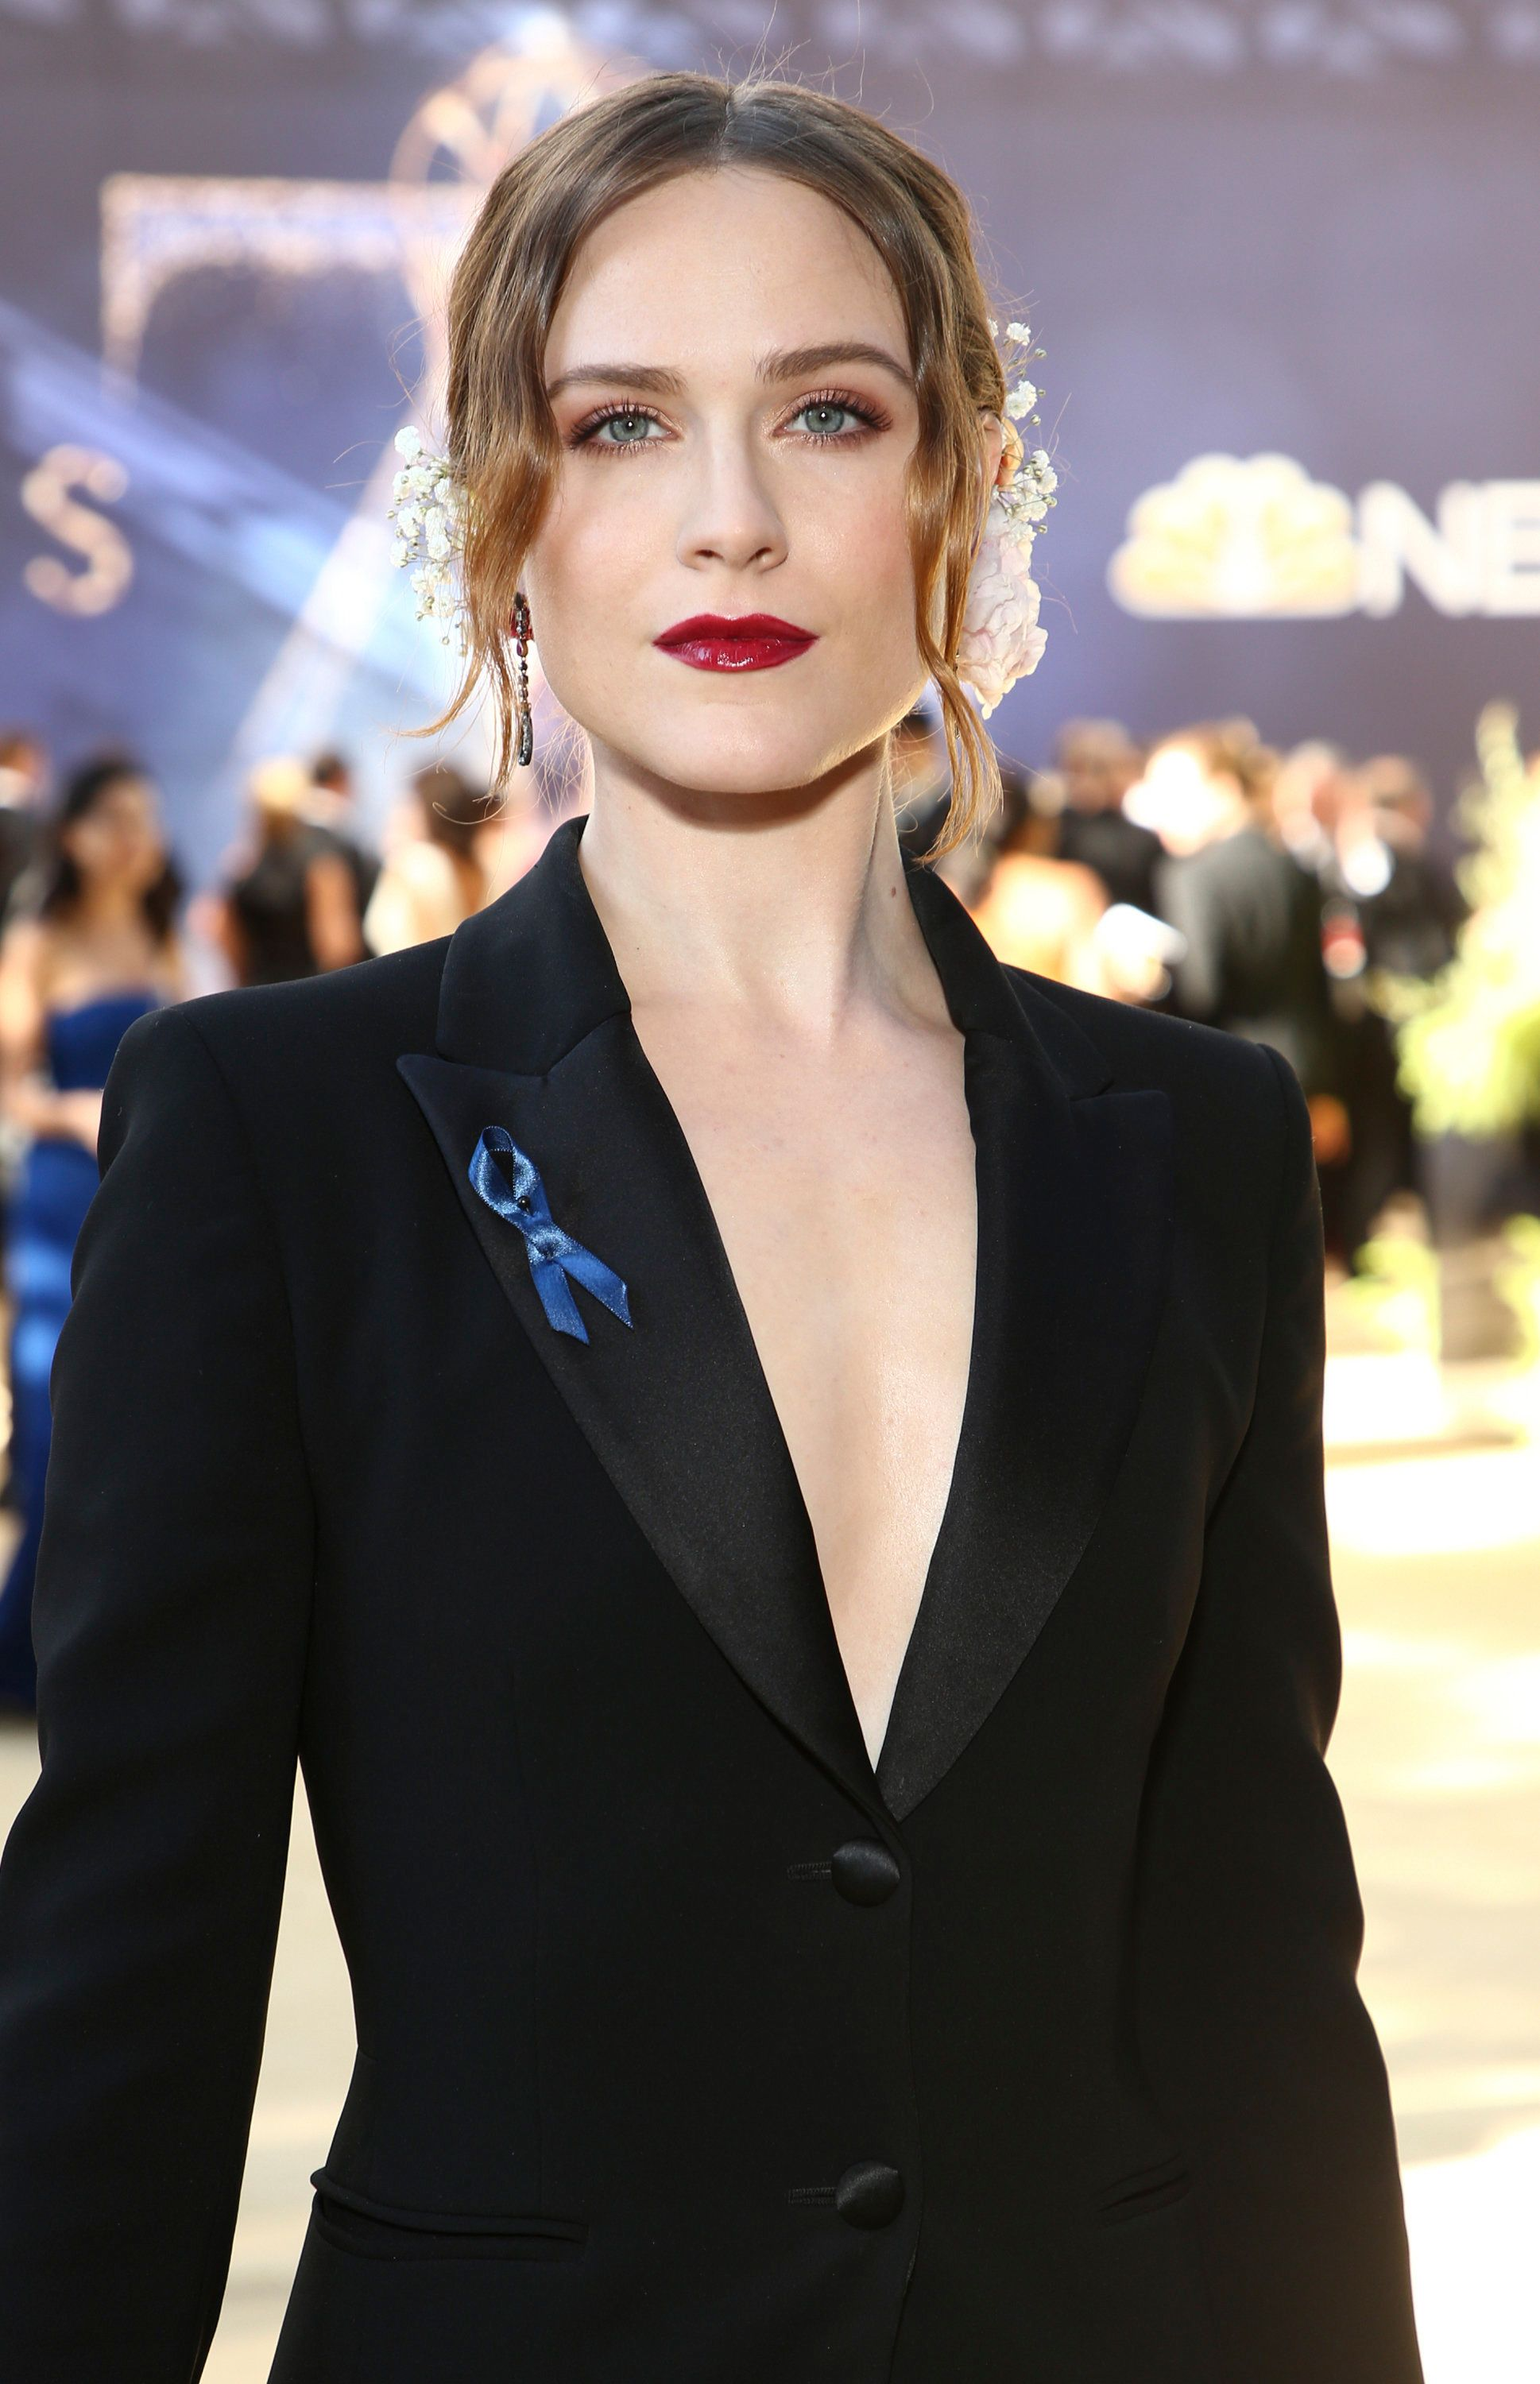 Evan Rachel Wood tweeted on March 11 that sheresorted to self-harm during a relationship with an...